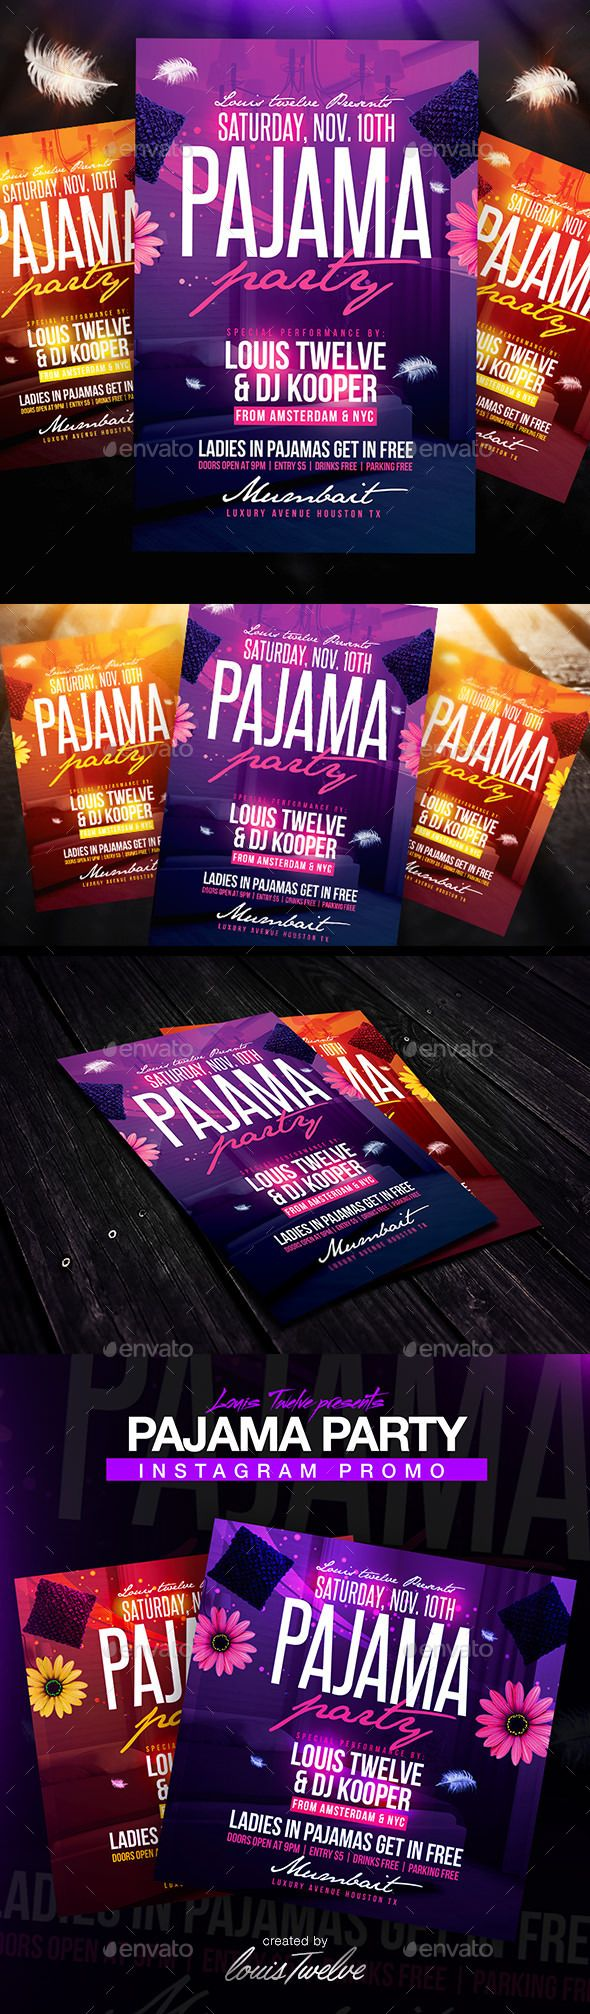 Sexy pajama party flyers